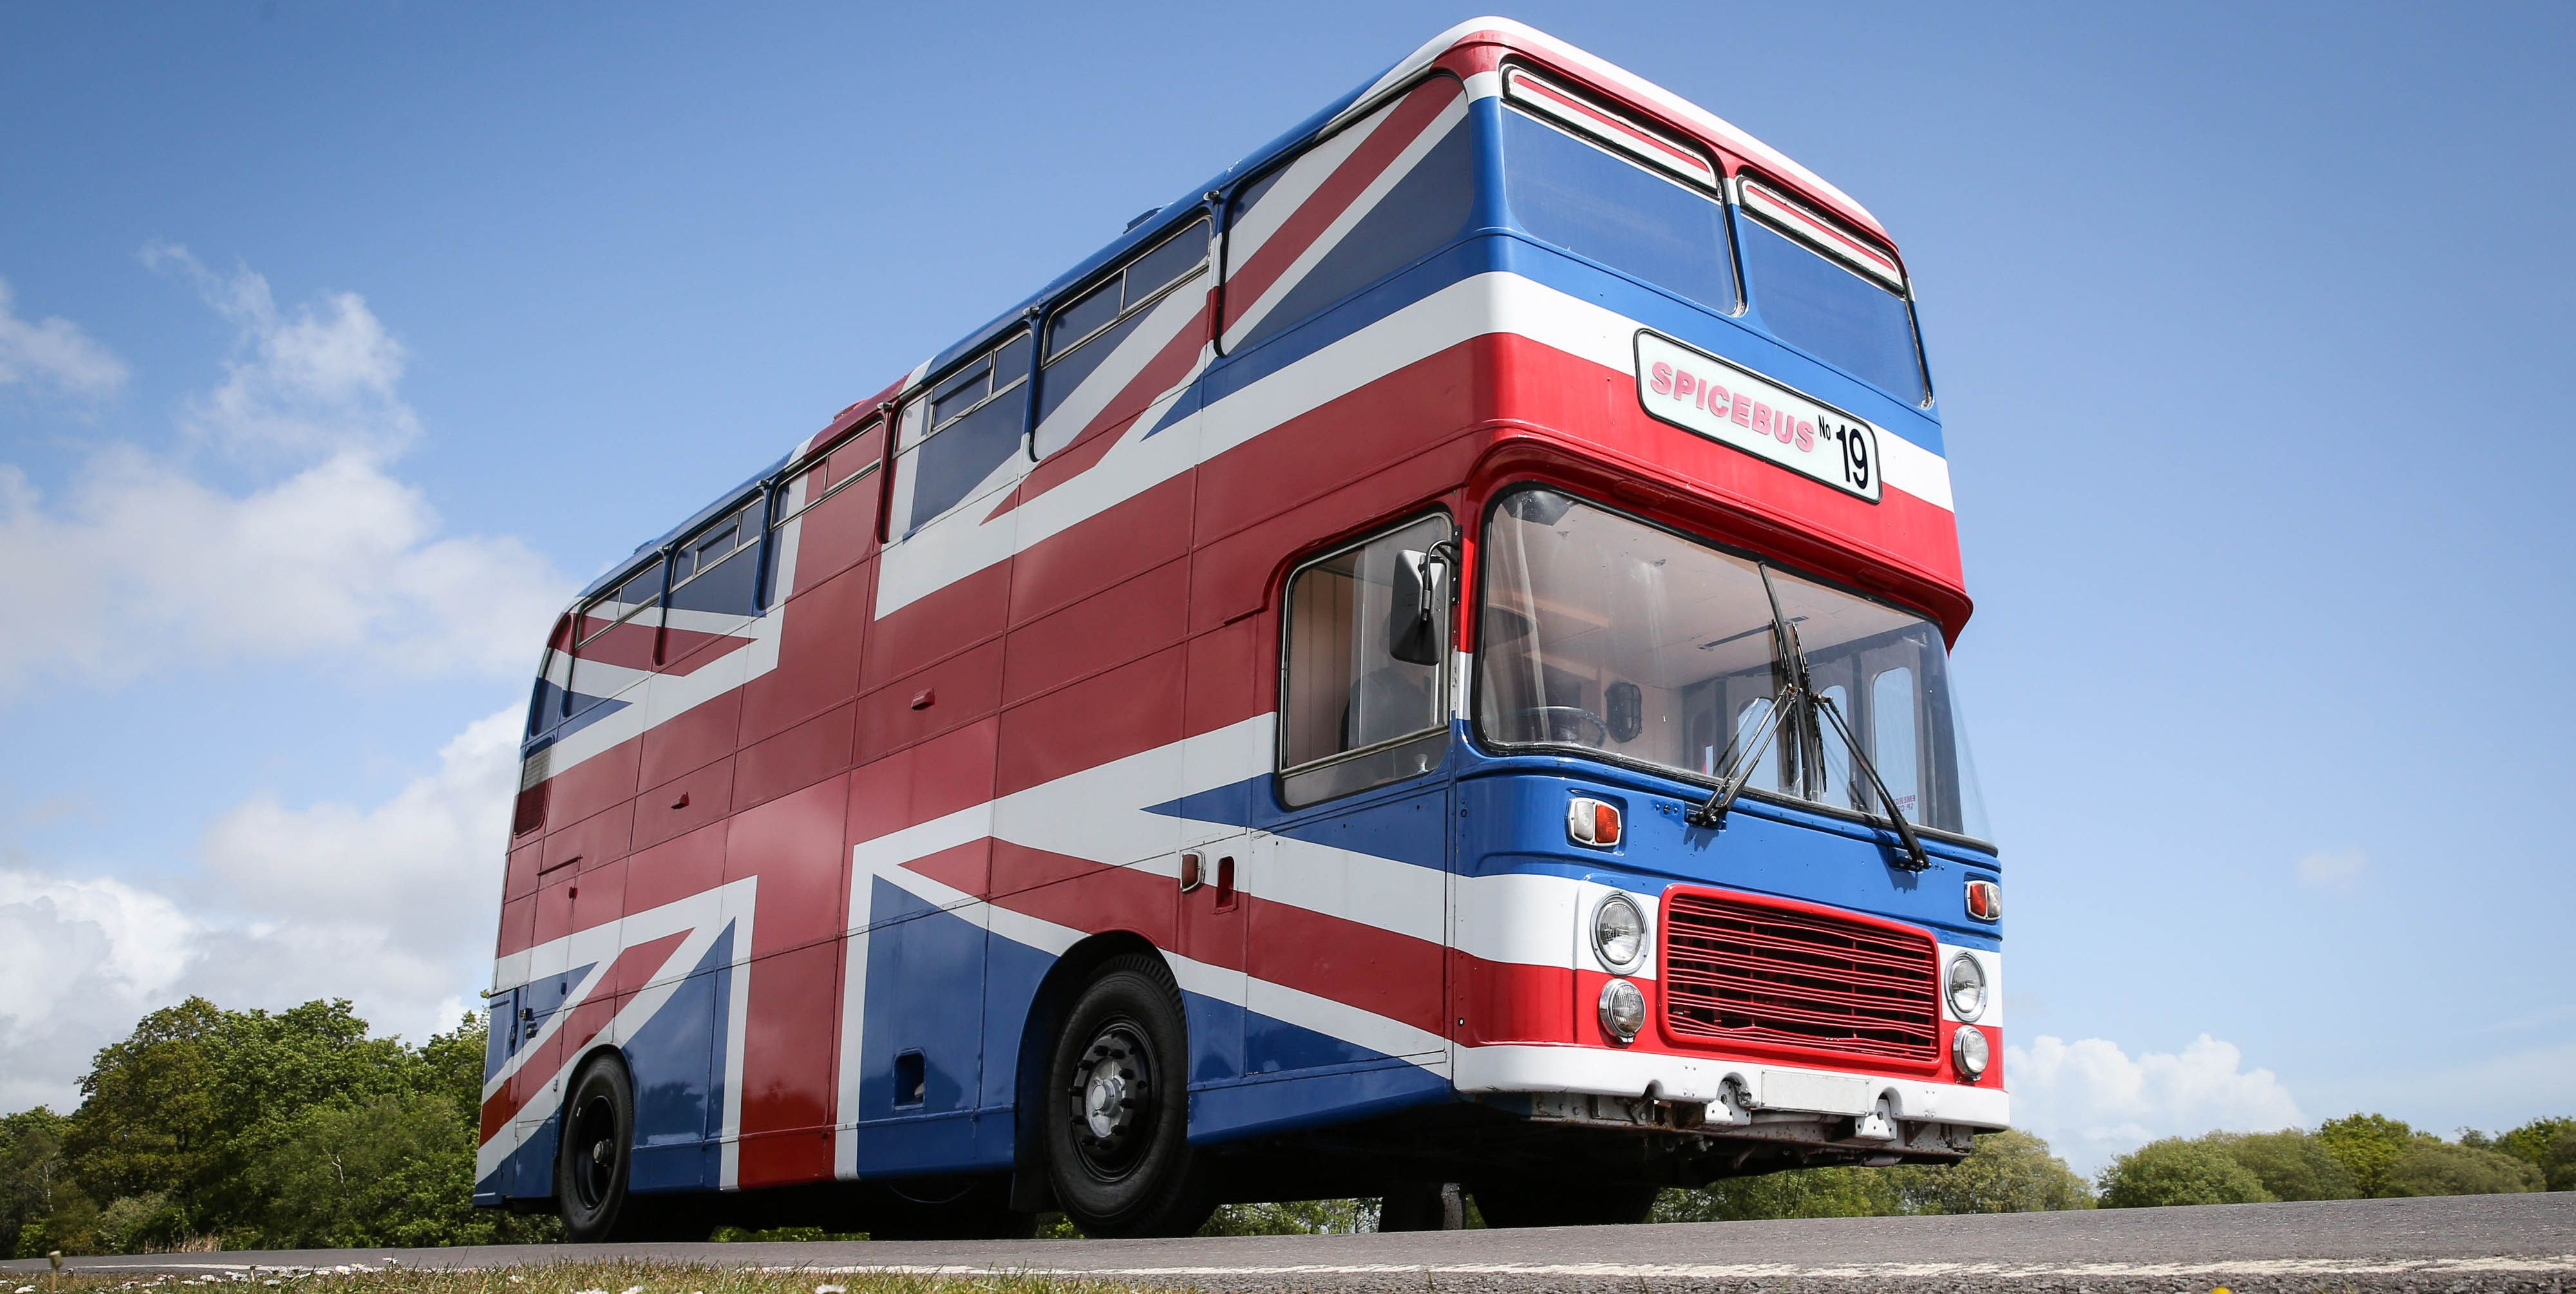 You Can Book a Private Sleepover In the Original Bus From 'Spice World'